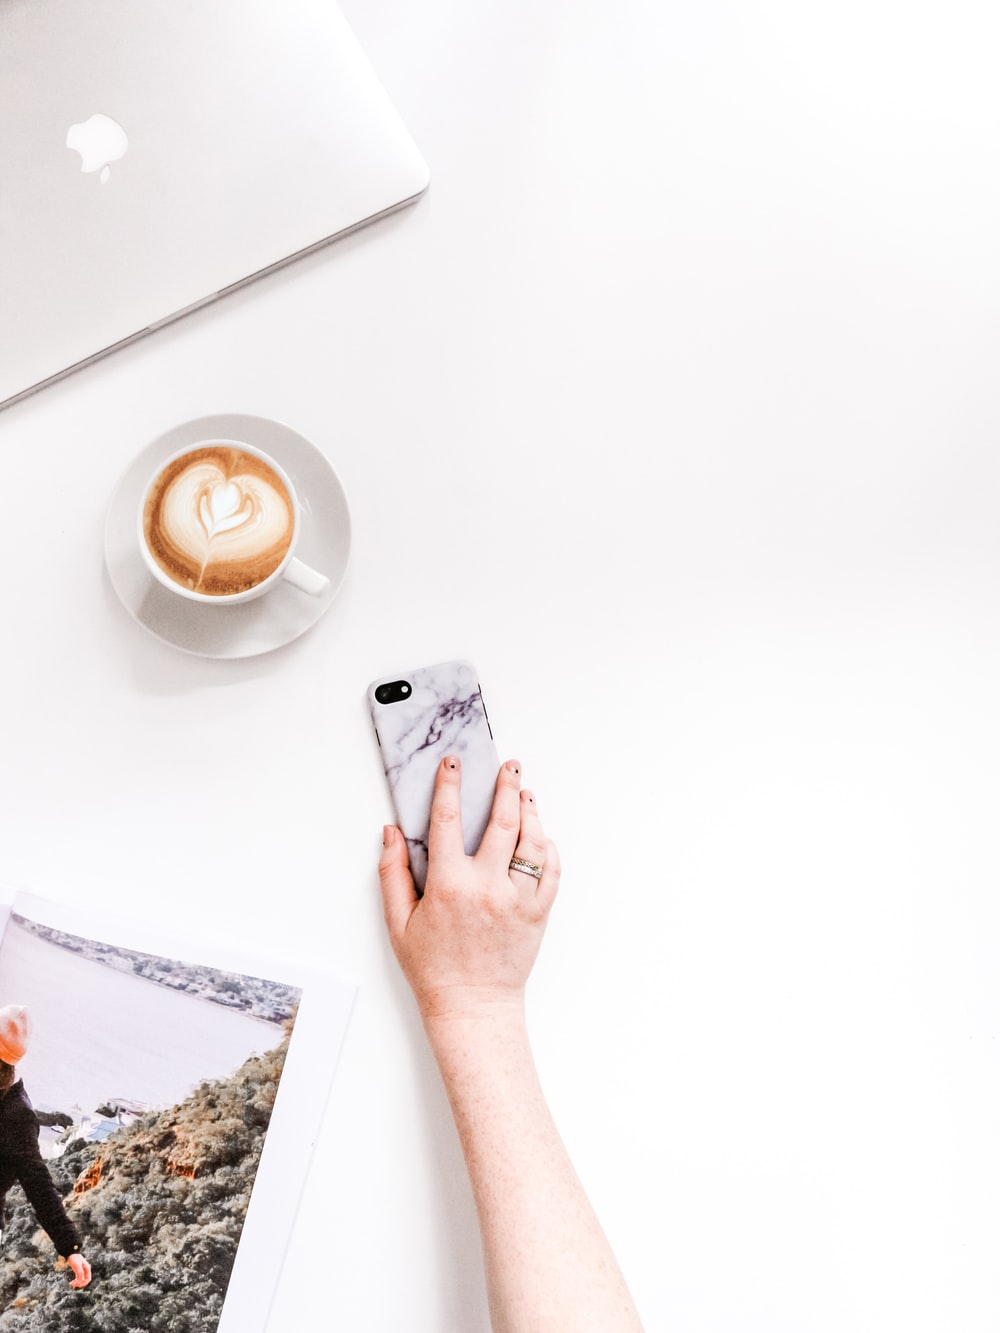 person holding smartphone near cup of coffee